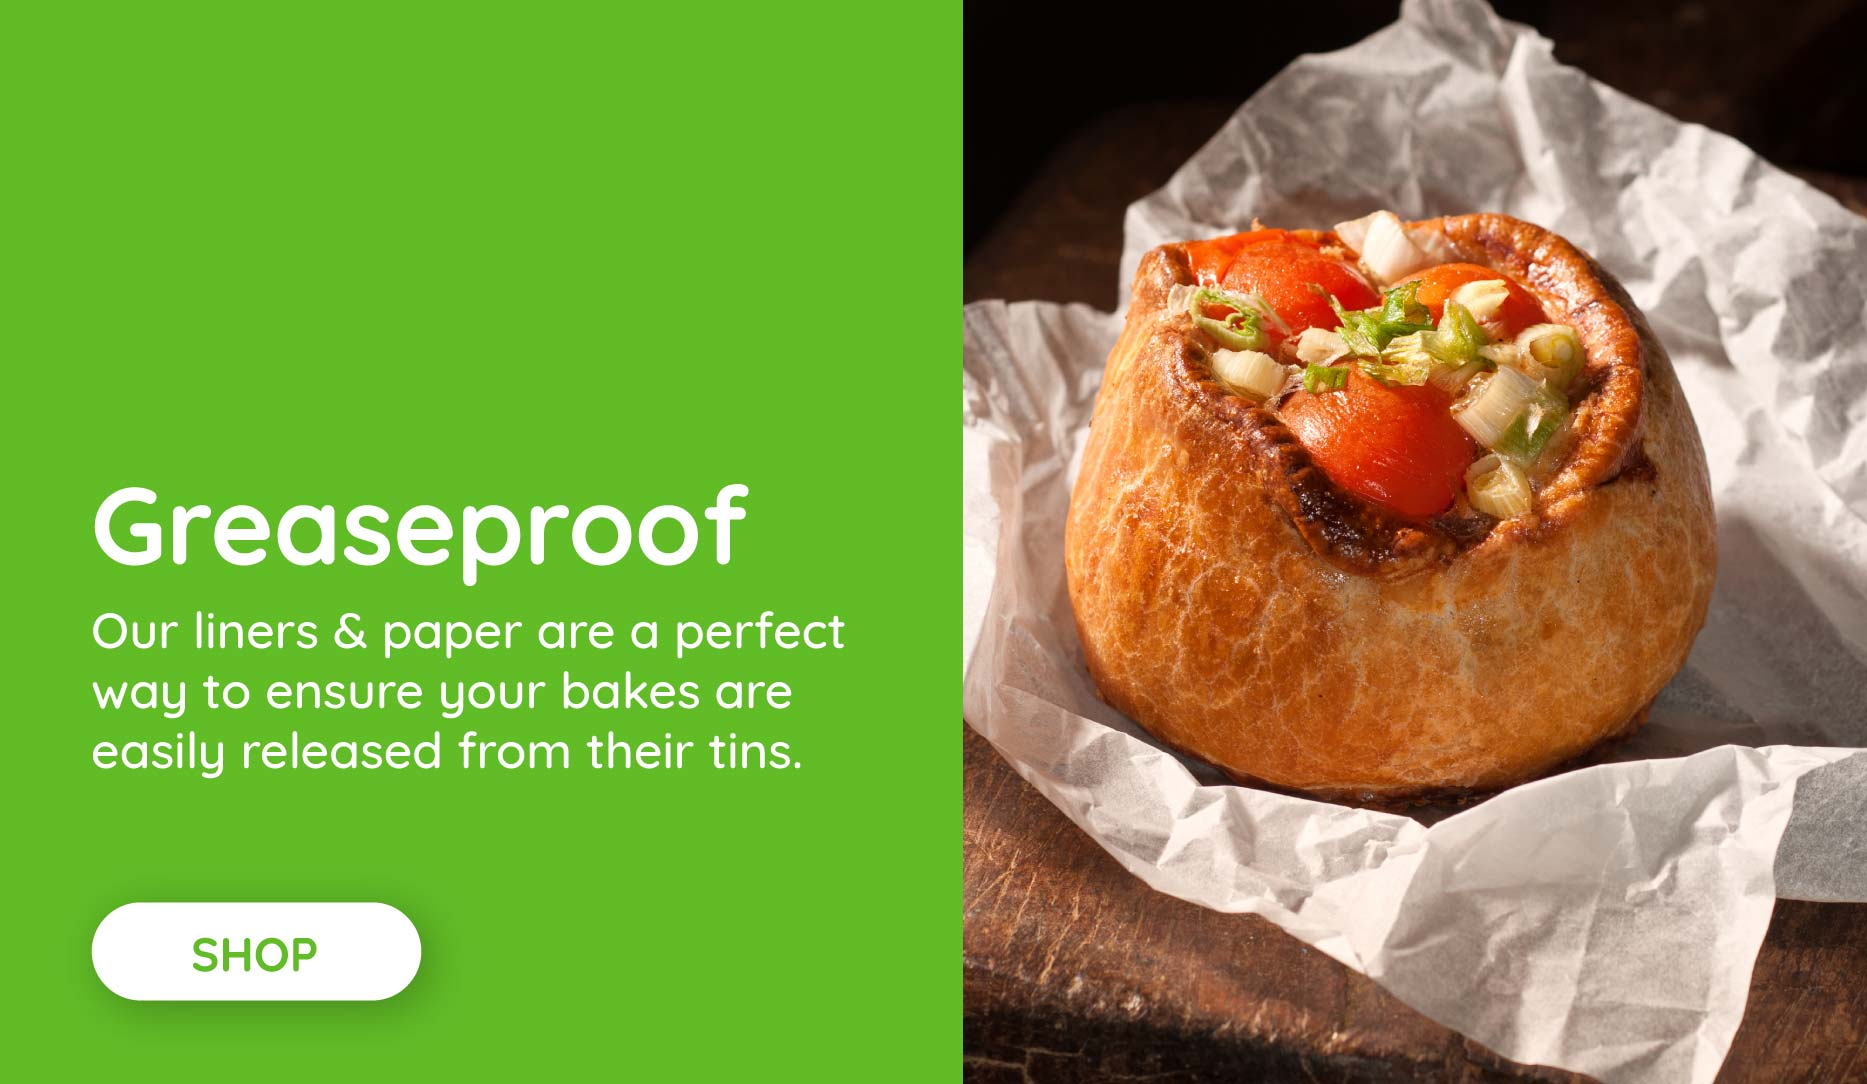 Shop greaseproof paper & liners